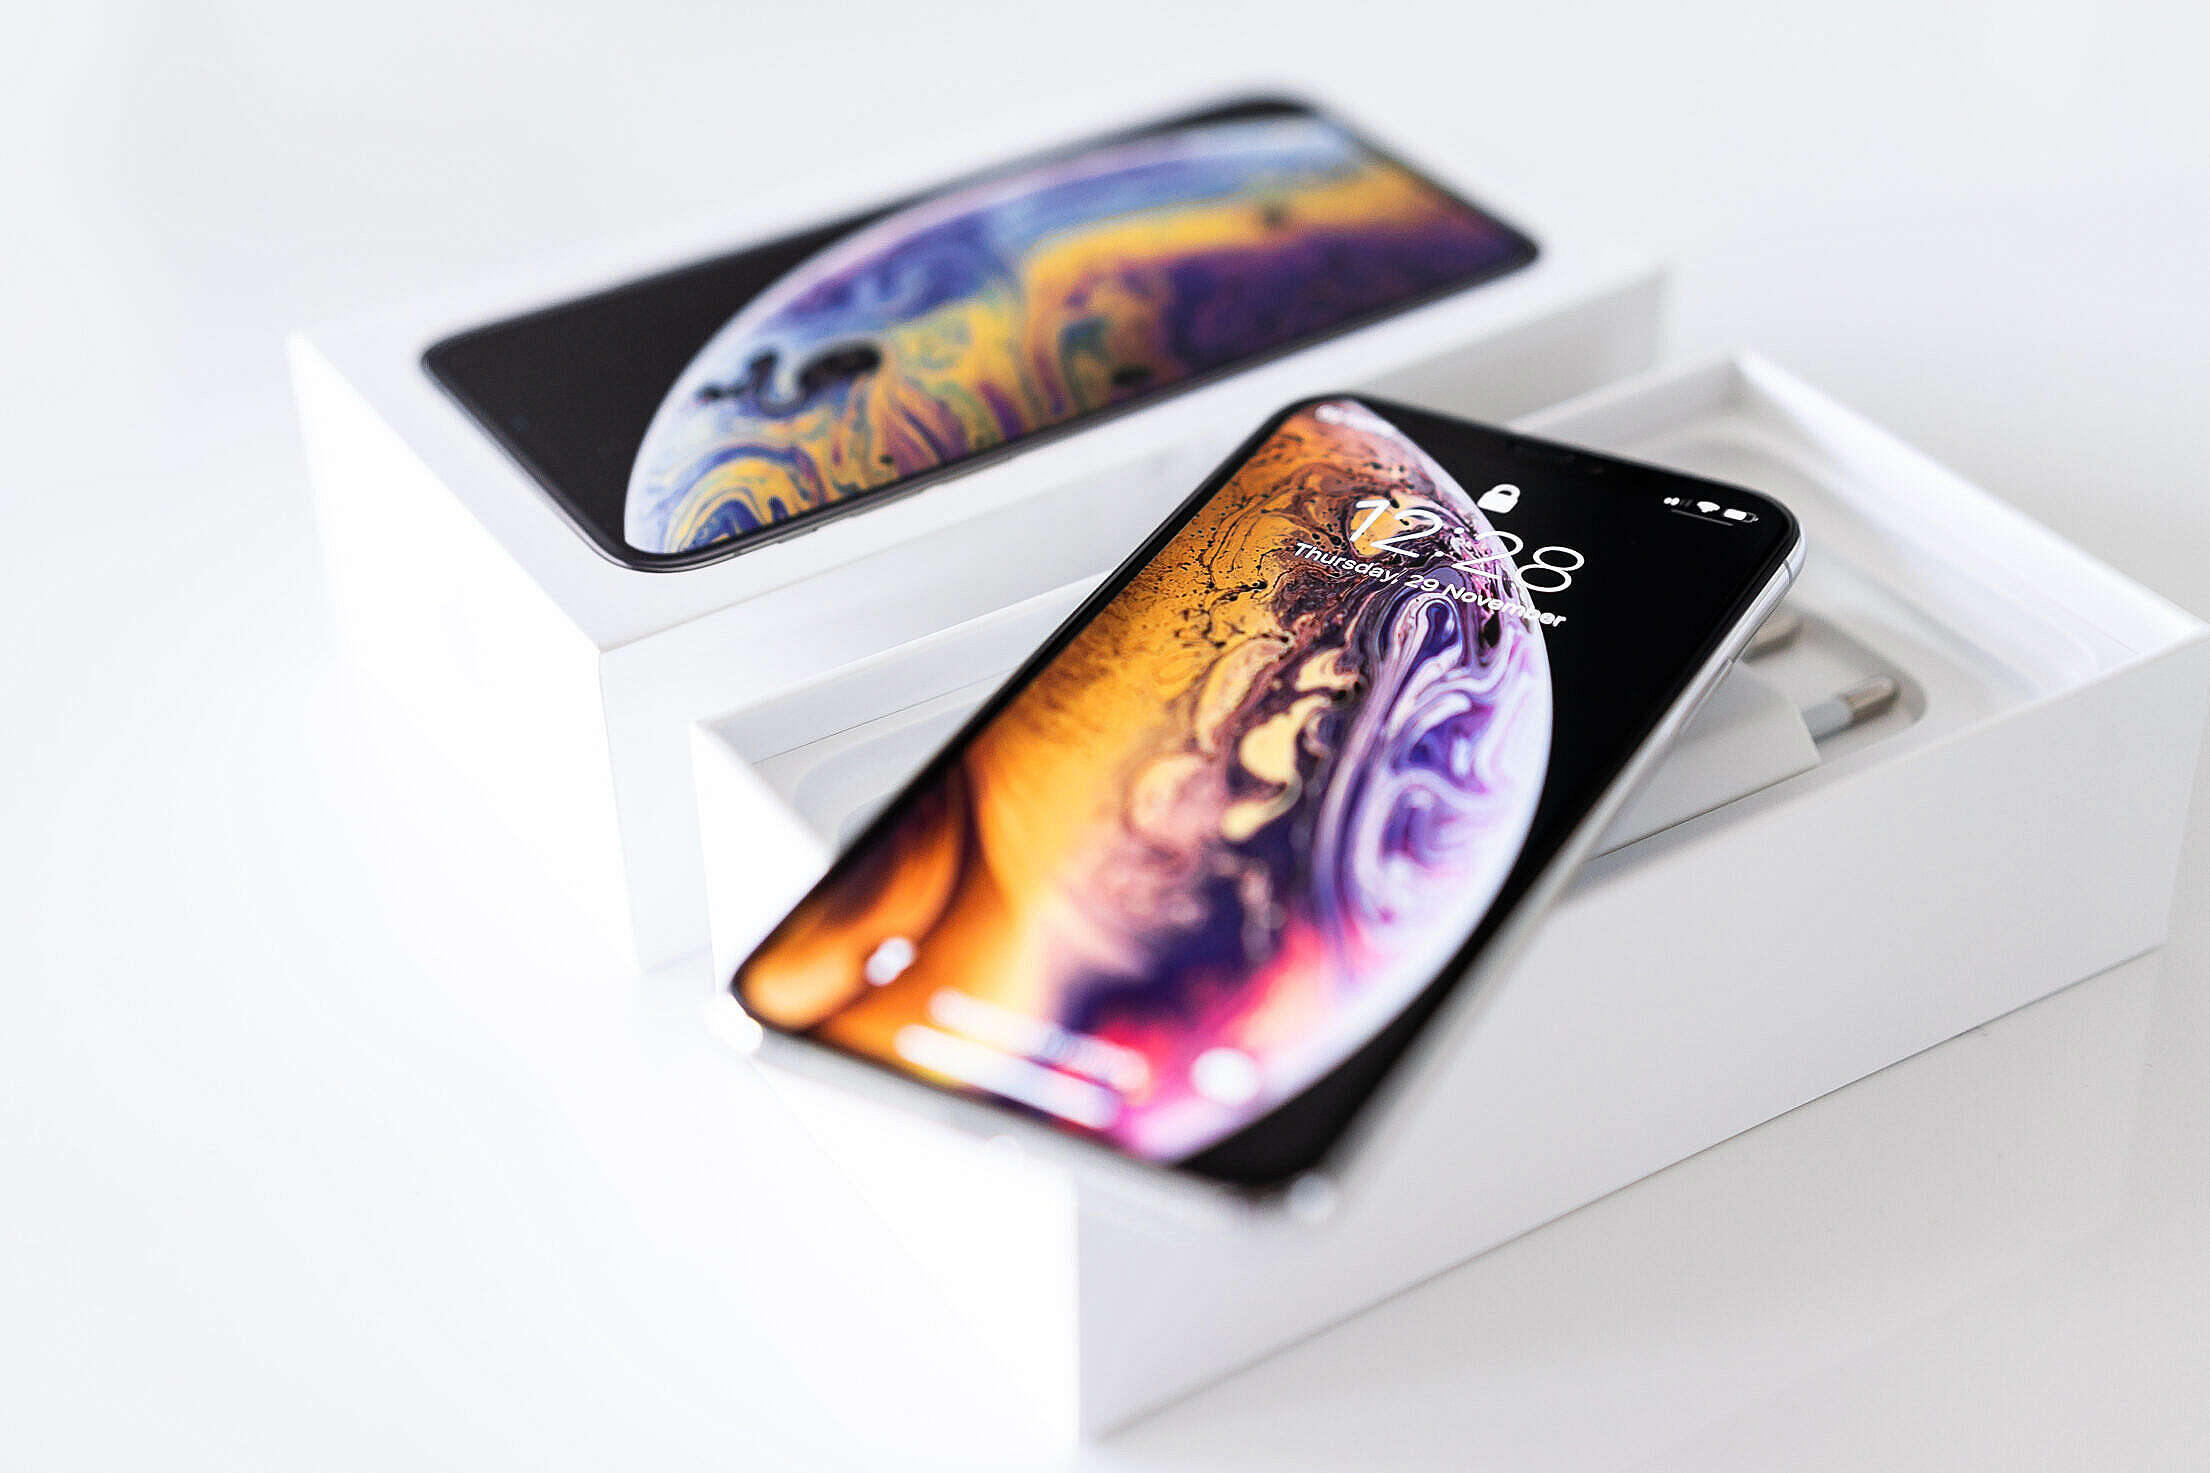 Unboxing iPhone XS Free Stock Photo